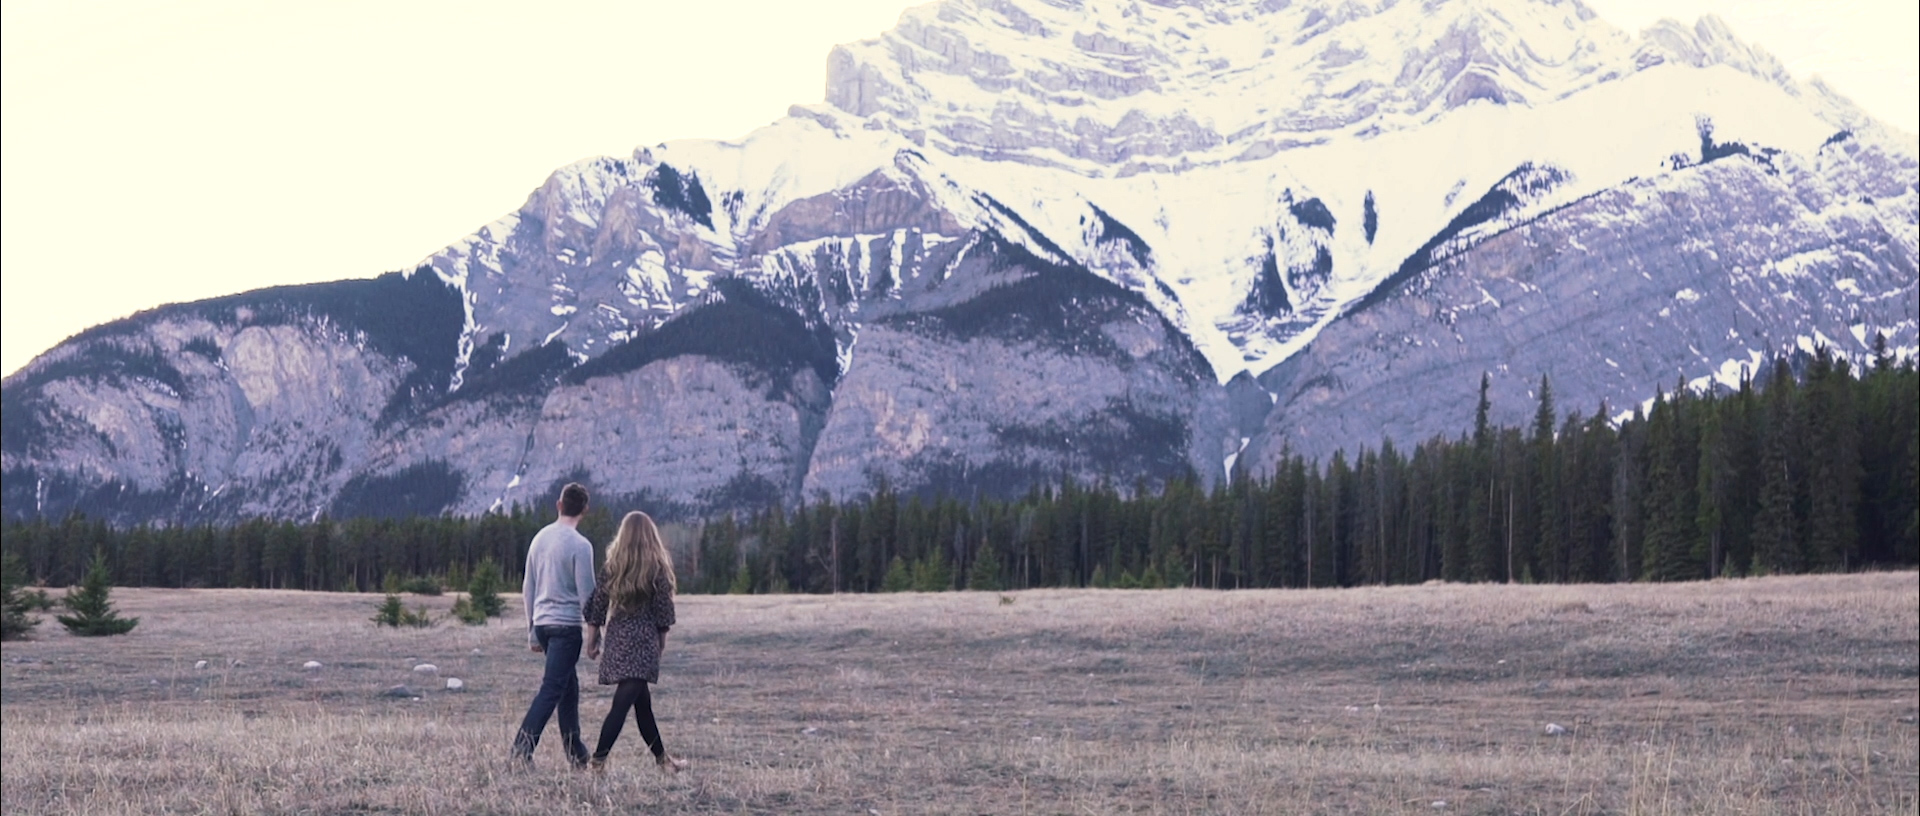 Jordan&Jessie Engagement video banff.jpg